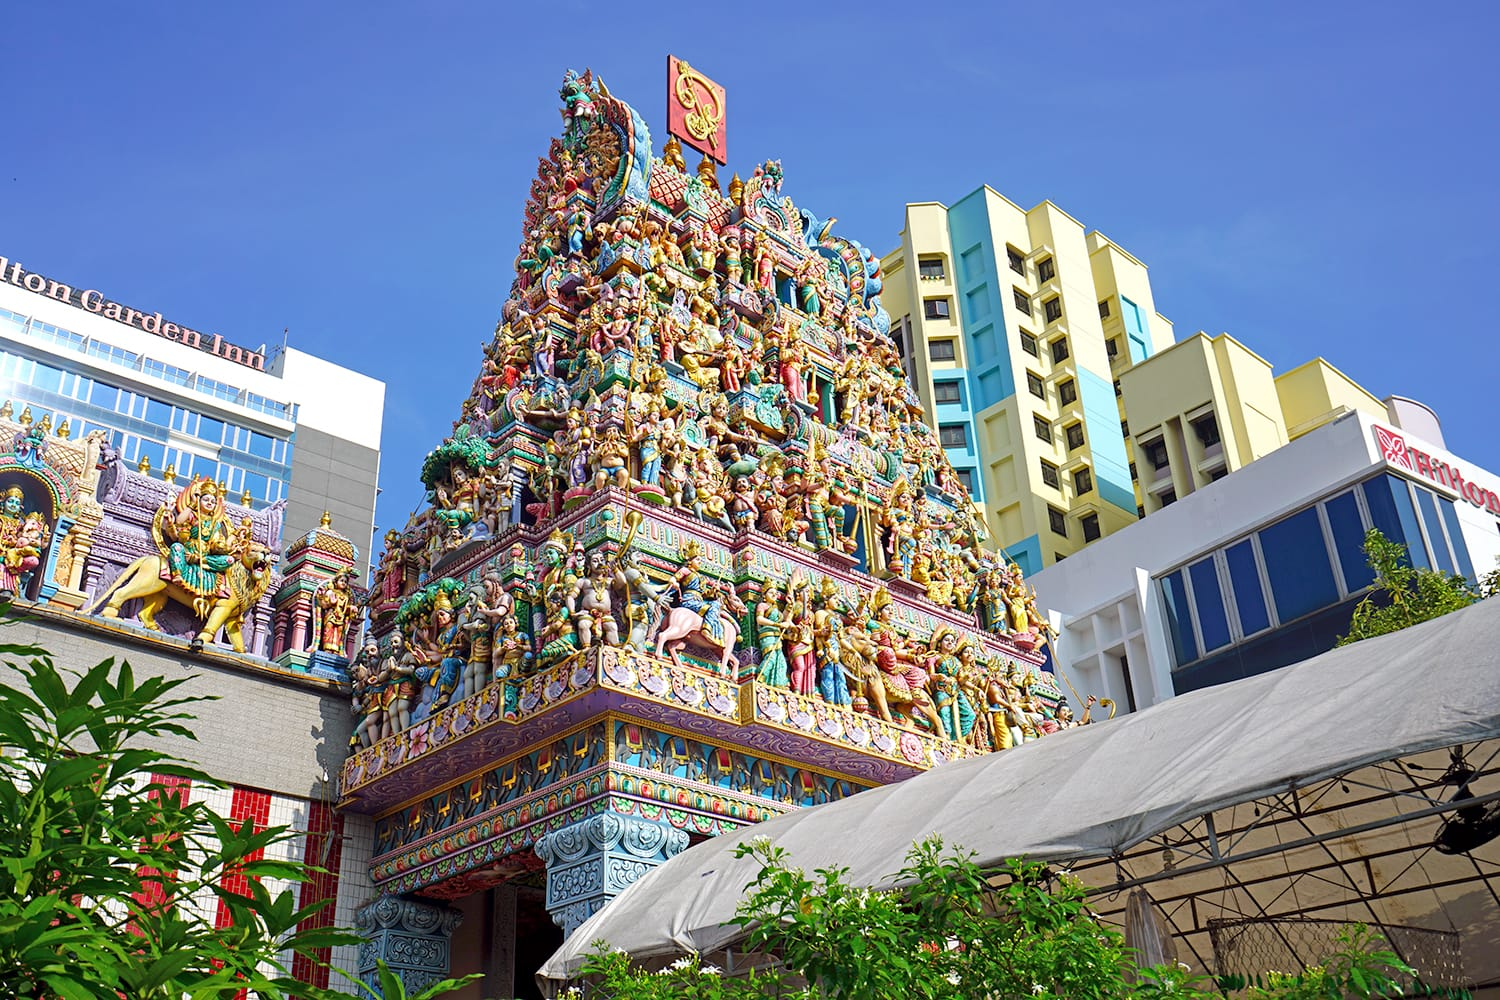 The Sri Veeramakaliamman Temple, located on Serangoon Street in Little India, Singapore